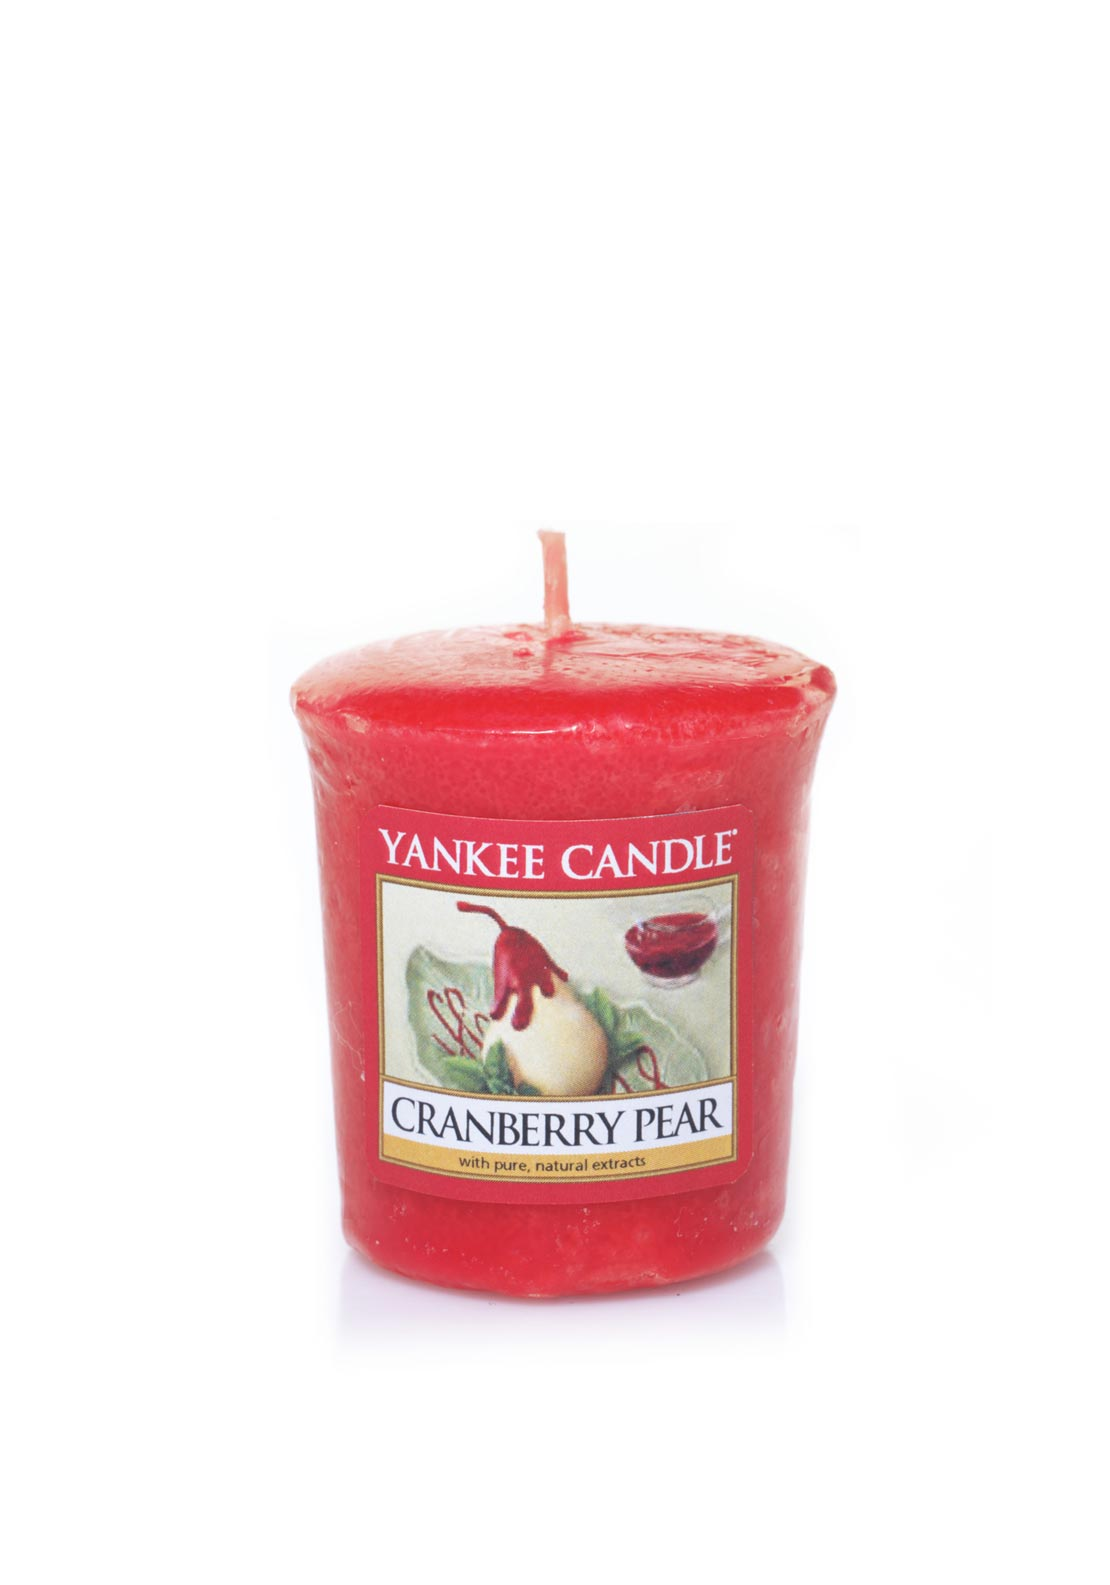 Yankee Candle Sampler Votive Candle, Cranberry Pear